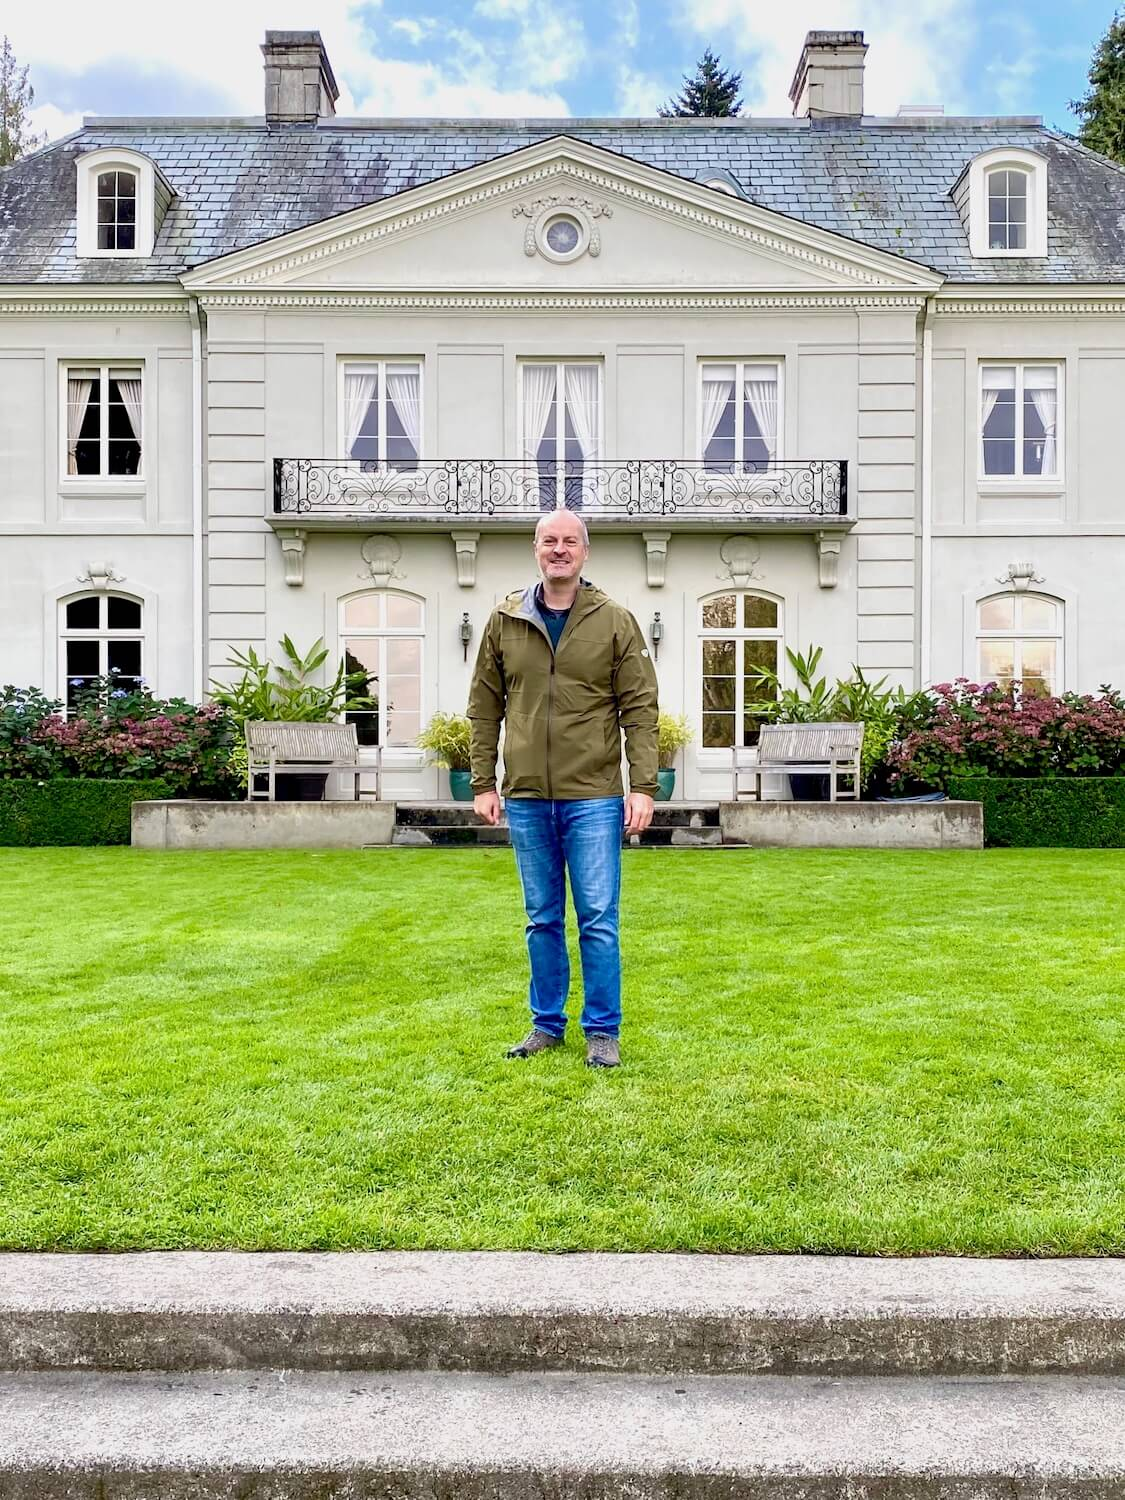 Matthew Kessi stands in front of the grand lawn of the Residence at Bloedel Reserve on Bainbridge Island. The three Storie elegant concrete house has windows with curtains and a slate roof. Two smoke stacks rise up to the blue sky above.